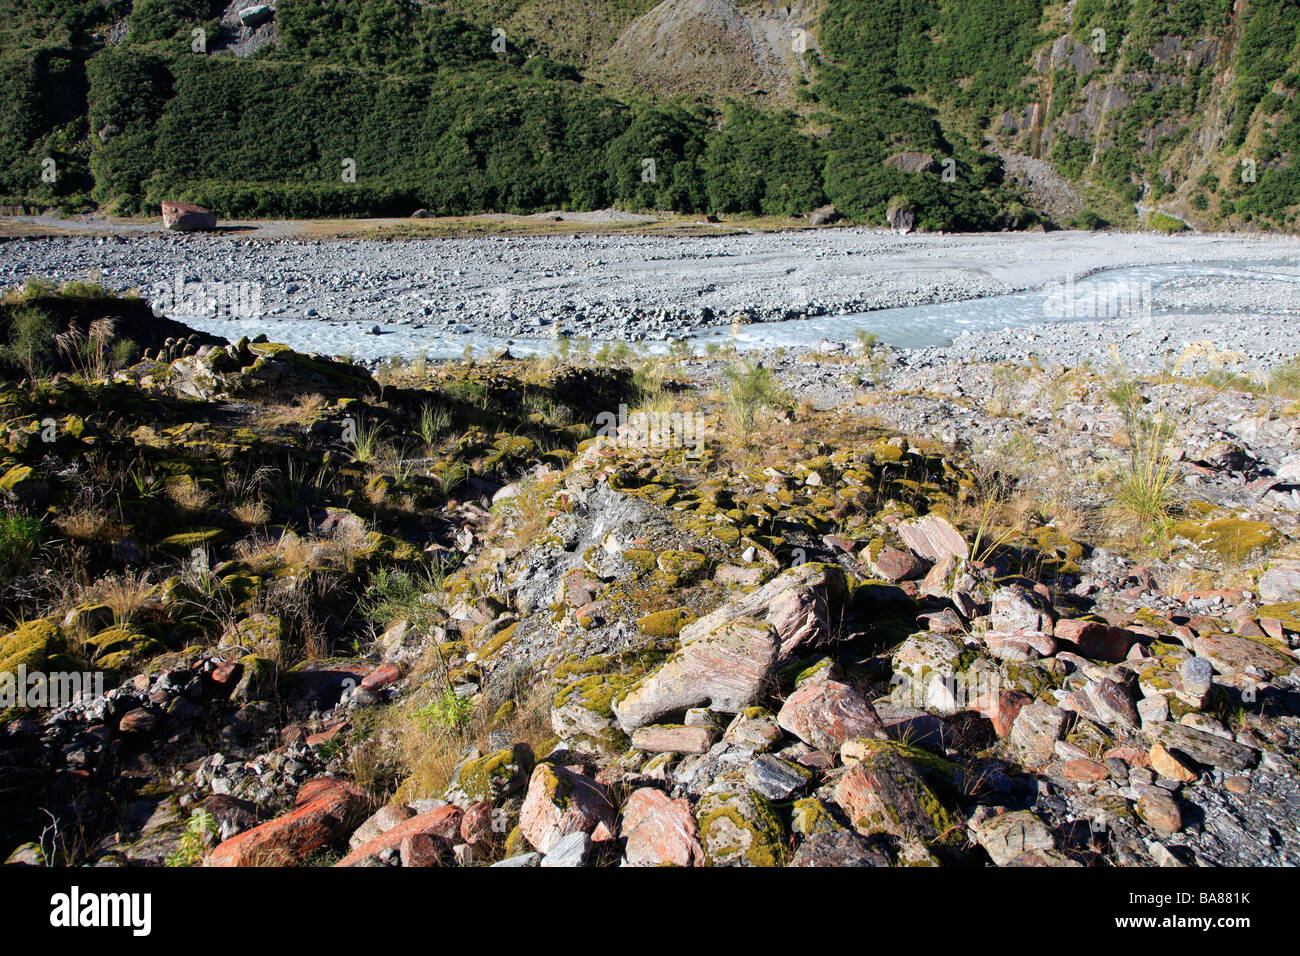 Boulders and rocks in glacial valley Fox river bed, West Coast, New Zealand Stock Photo